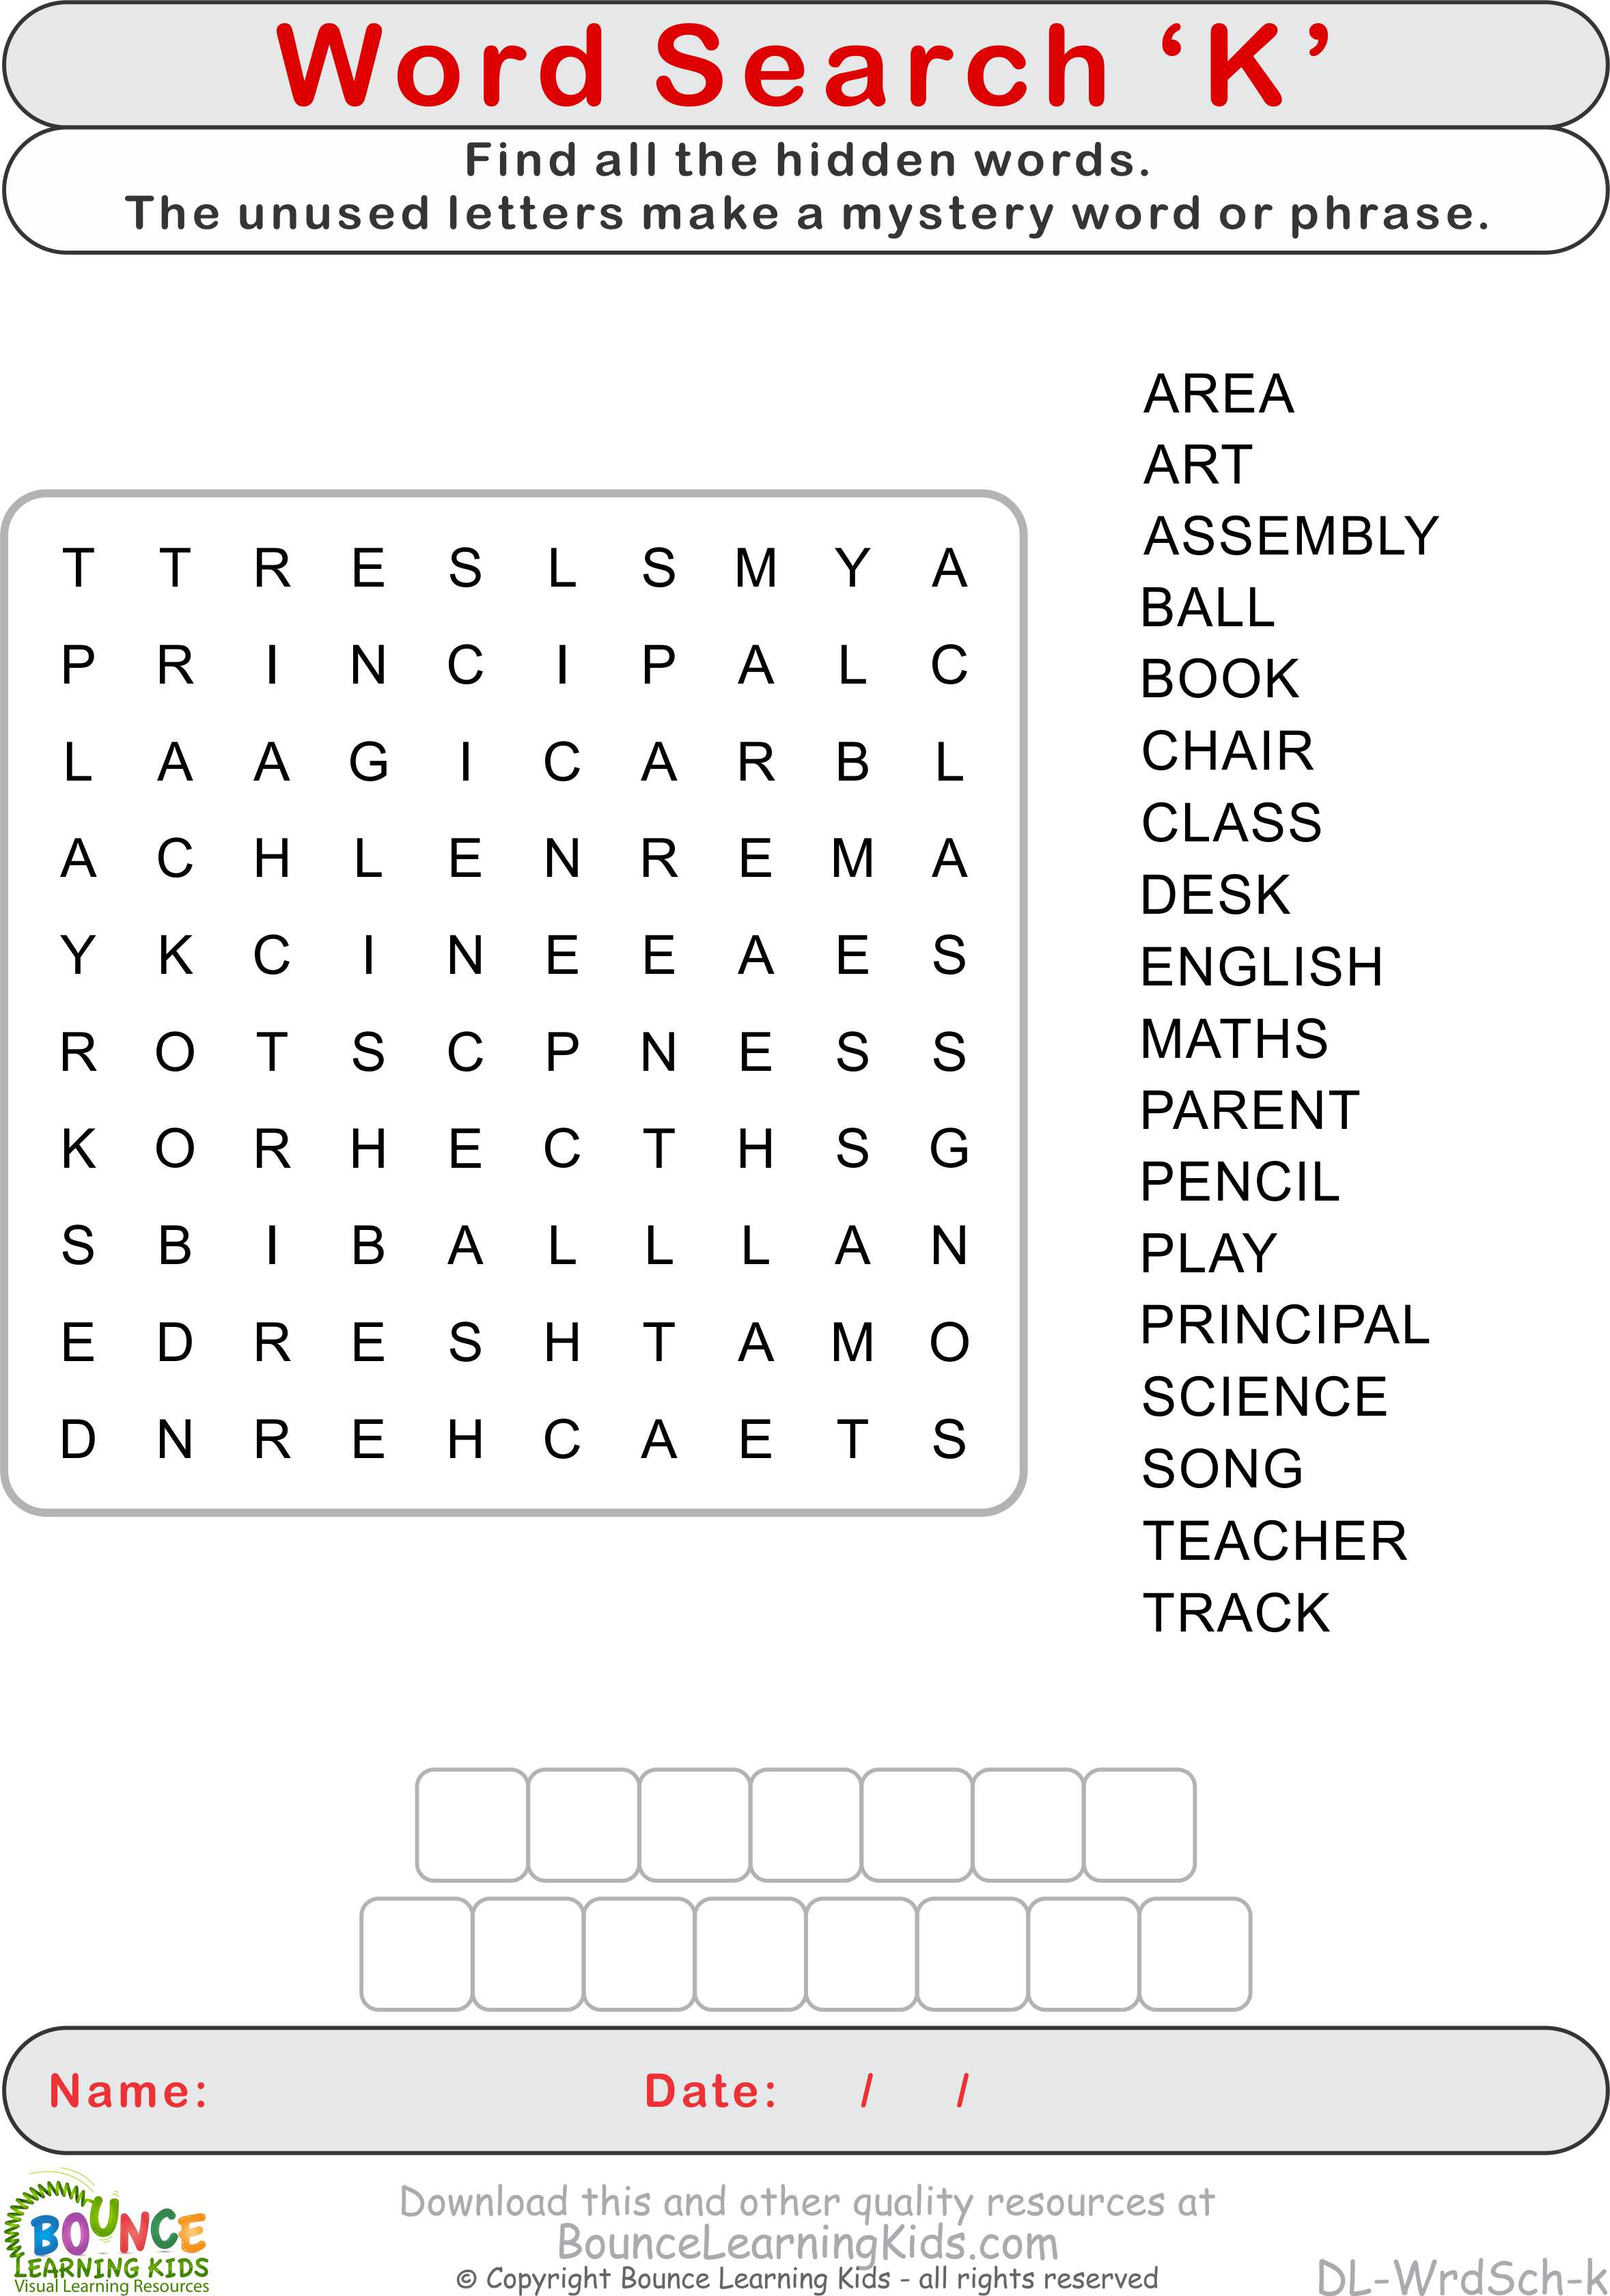 More wordsearch puzzles